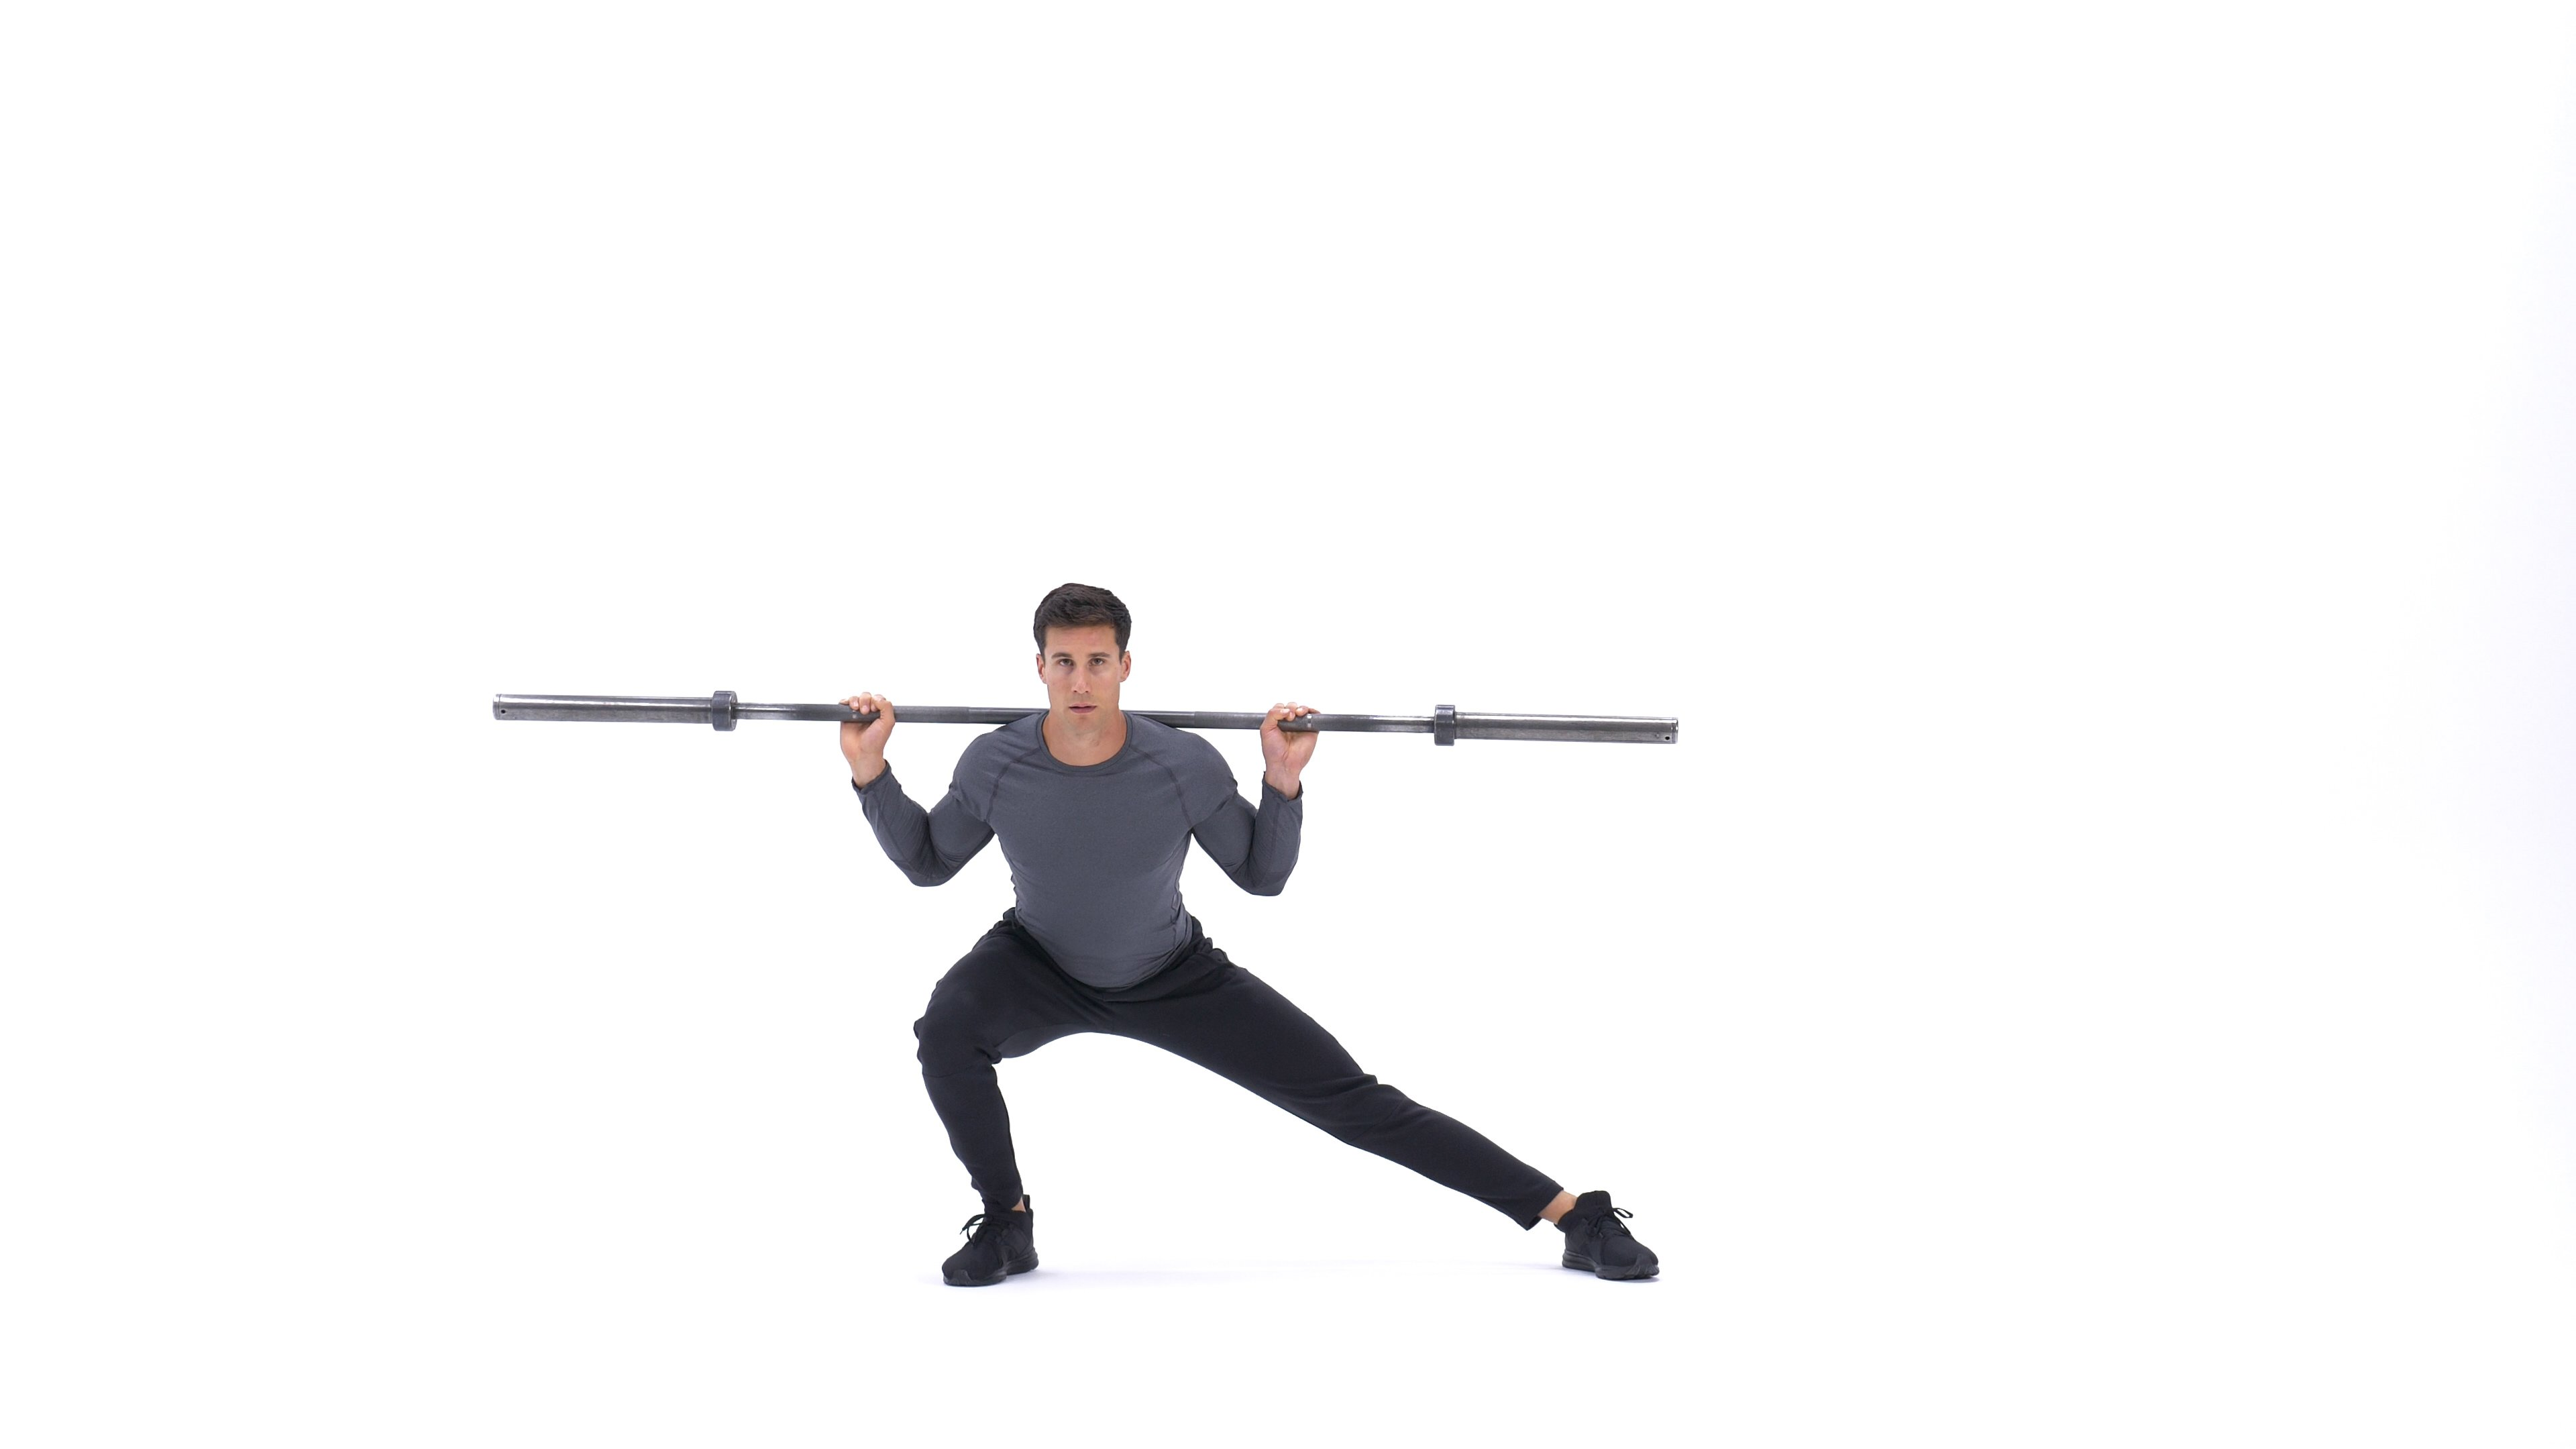 Barbell side split squat image